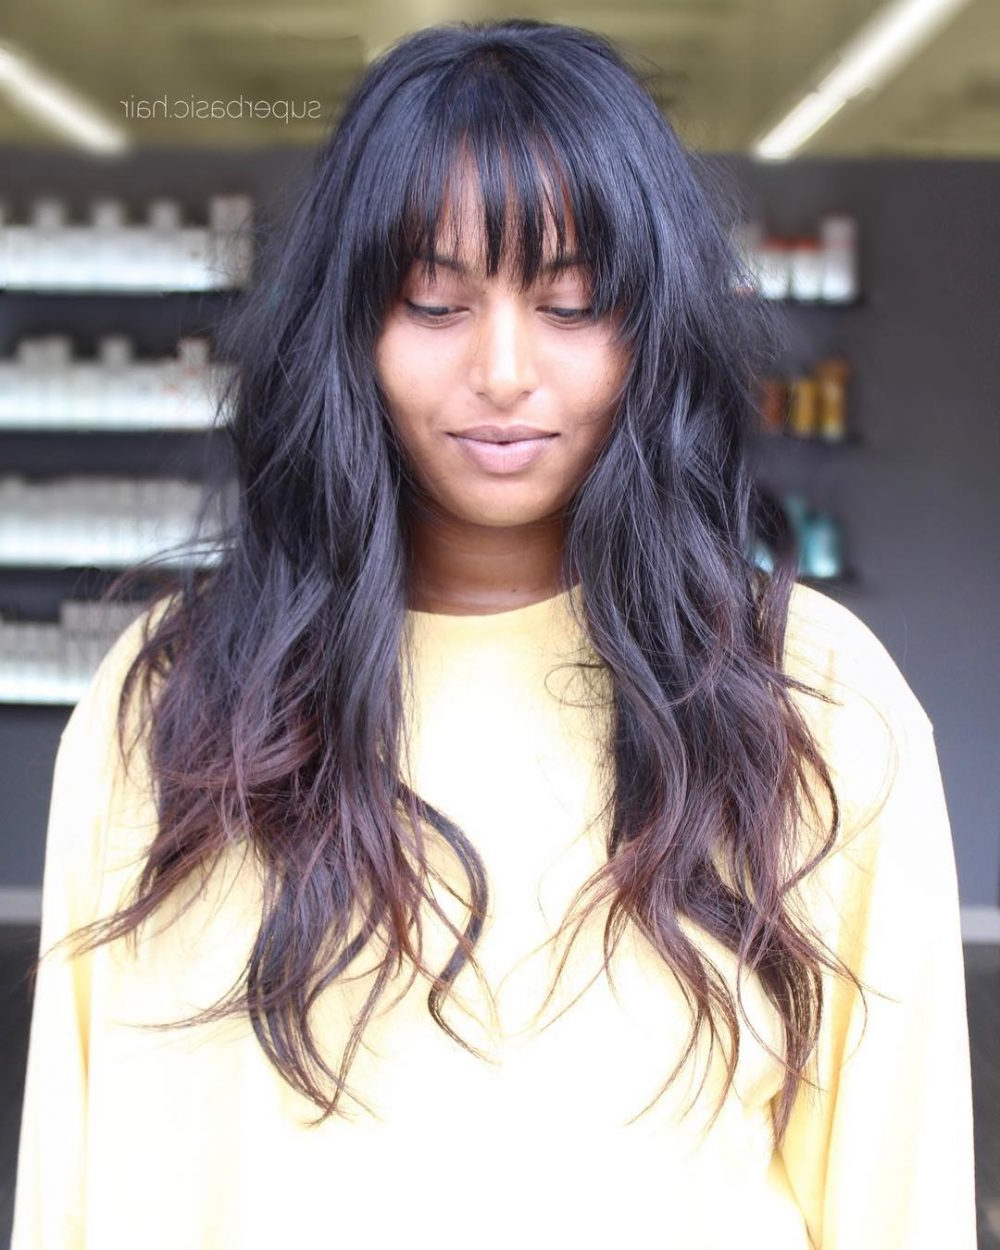 Hair Styles For Preferred Piece Y Blonde Shag Haircuts With Curtain Bangs (View 18 of 20)